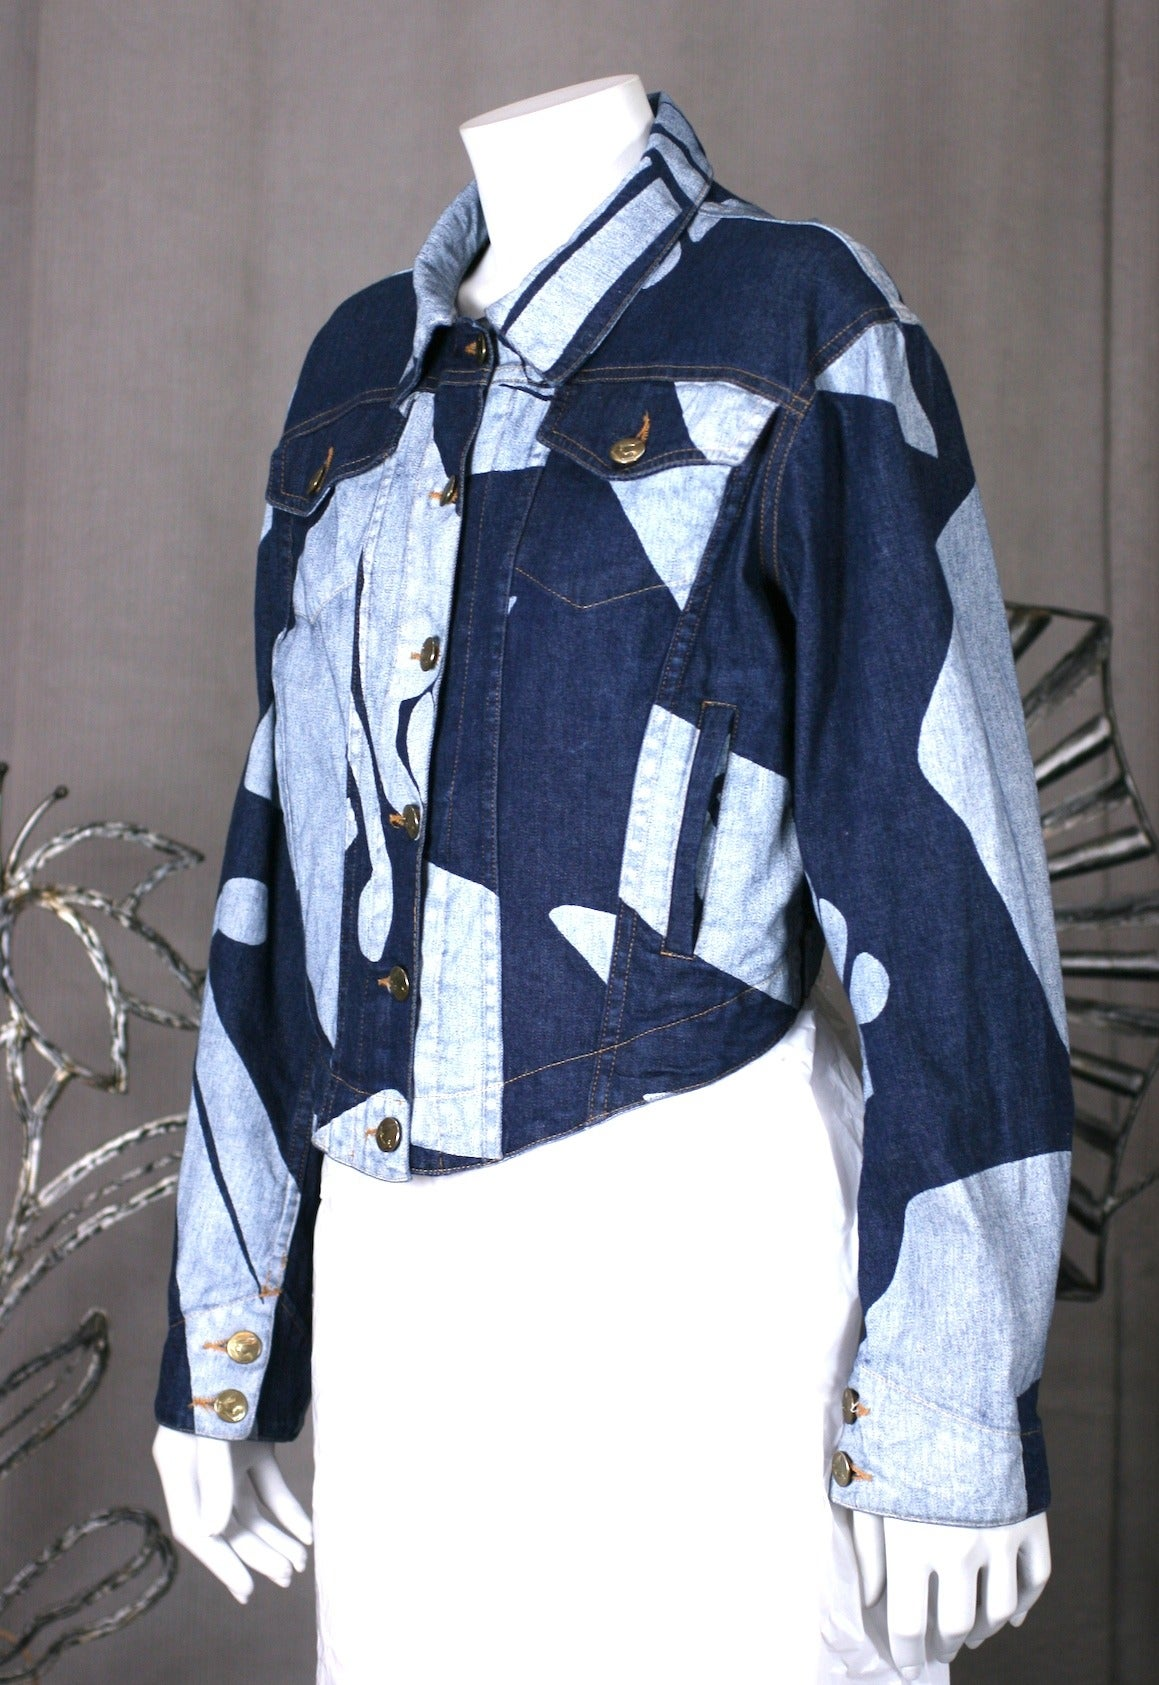 Vivienne Westwood Denim jacket, cut with 18th Century corset seaming. The master of historical fashion revisits the denim jacket, in a more fitted shape with a dipping curved hem. The denim is printed in white with her signature